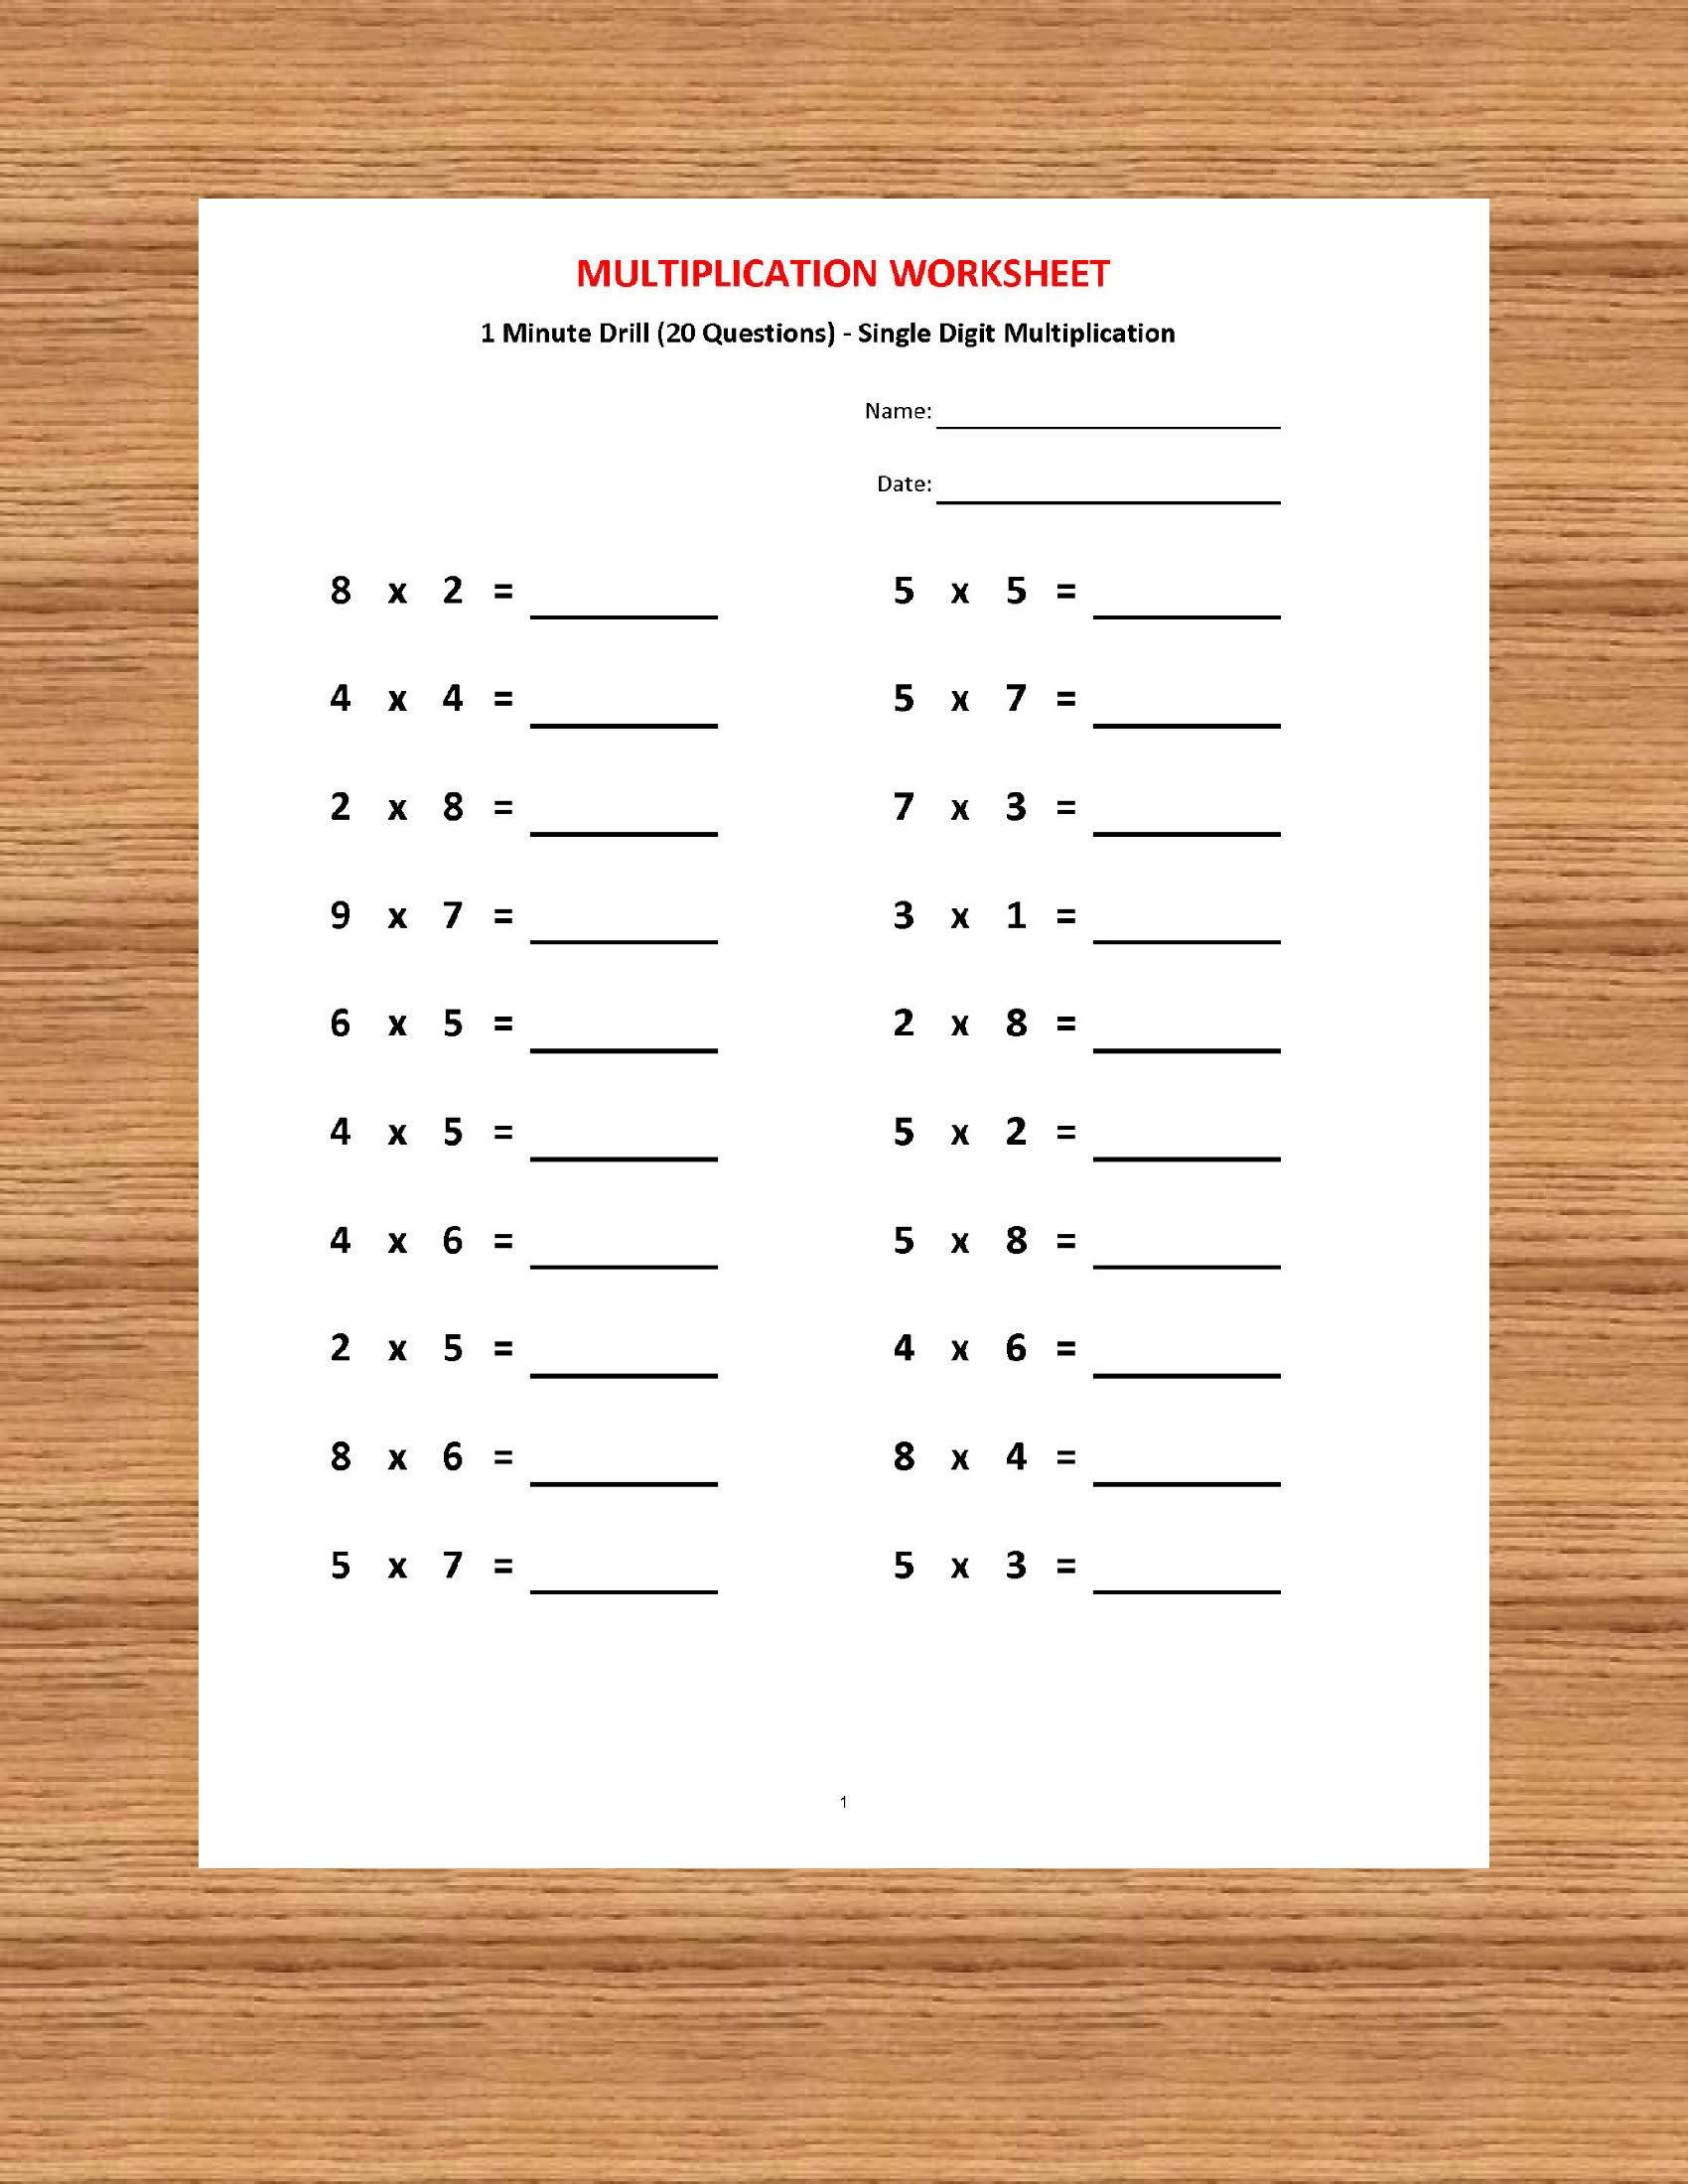 Multiplication 1 minute drill H 10 Math Worksheets with   Etsy   Math  worksheets [ 2200 x 1700 Pixel ]